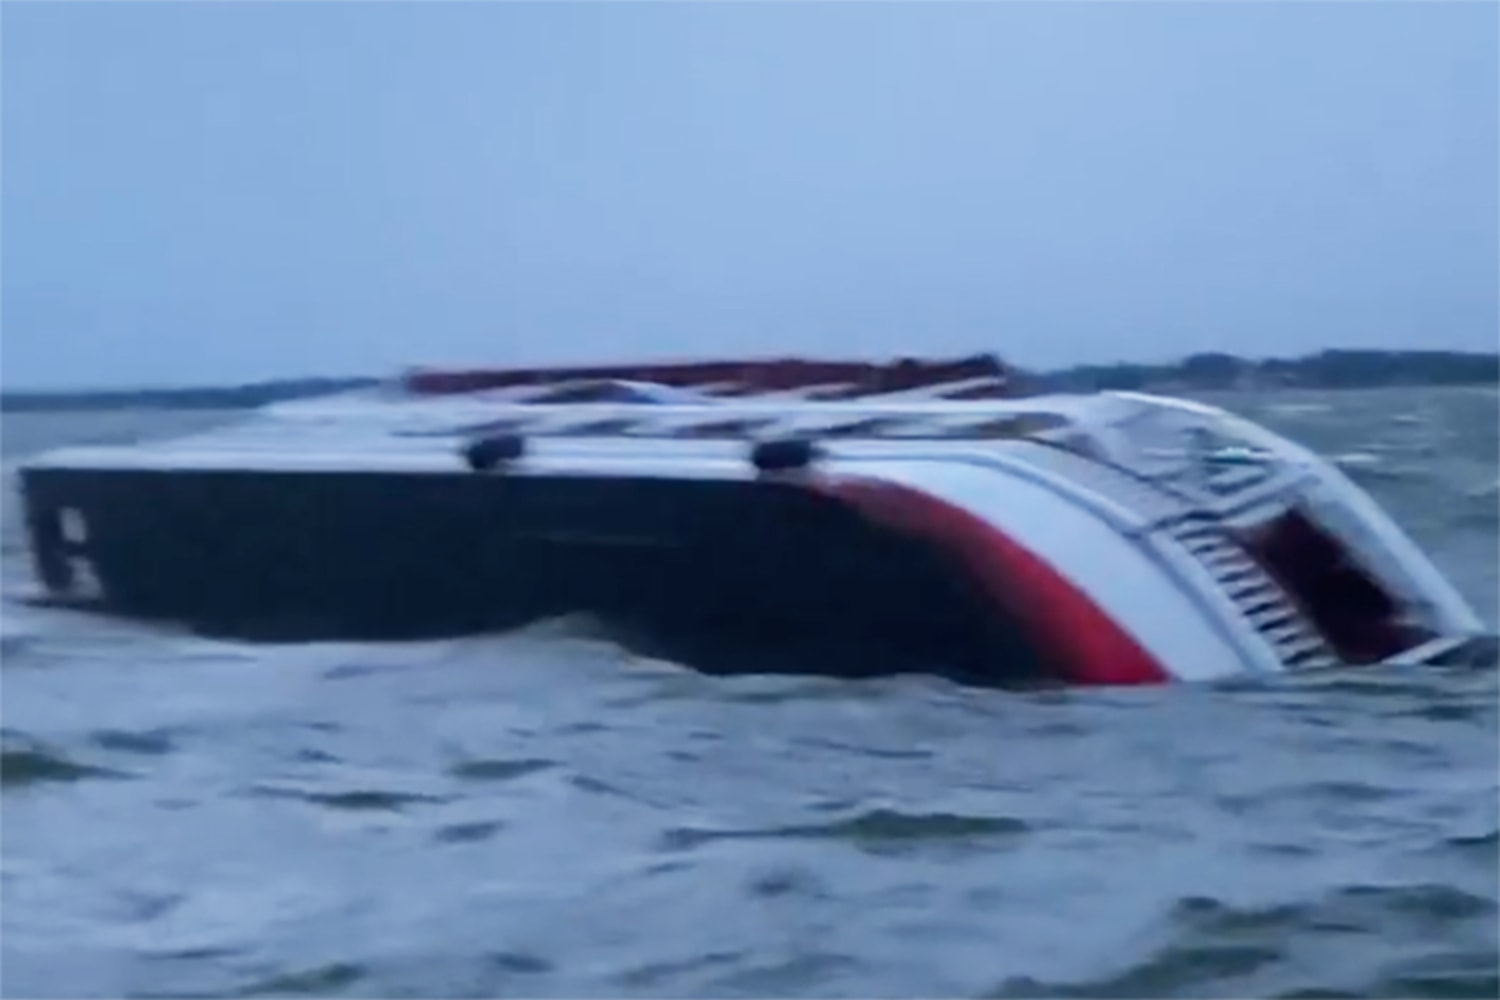 One Person Dead After Texas Party Boat Carrying 53 People Capsizes During Thunderstorm